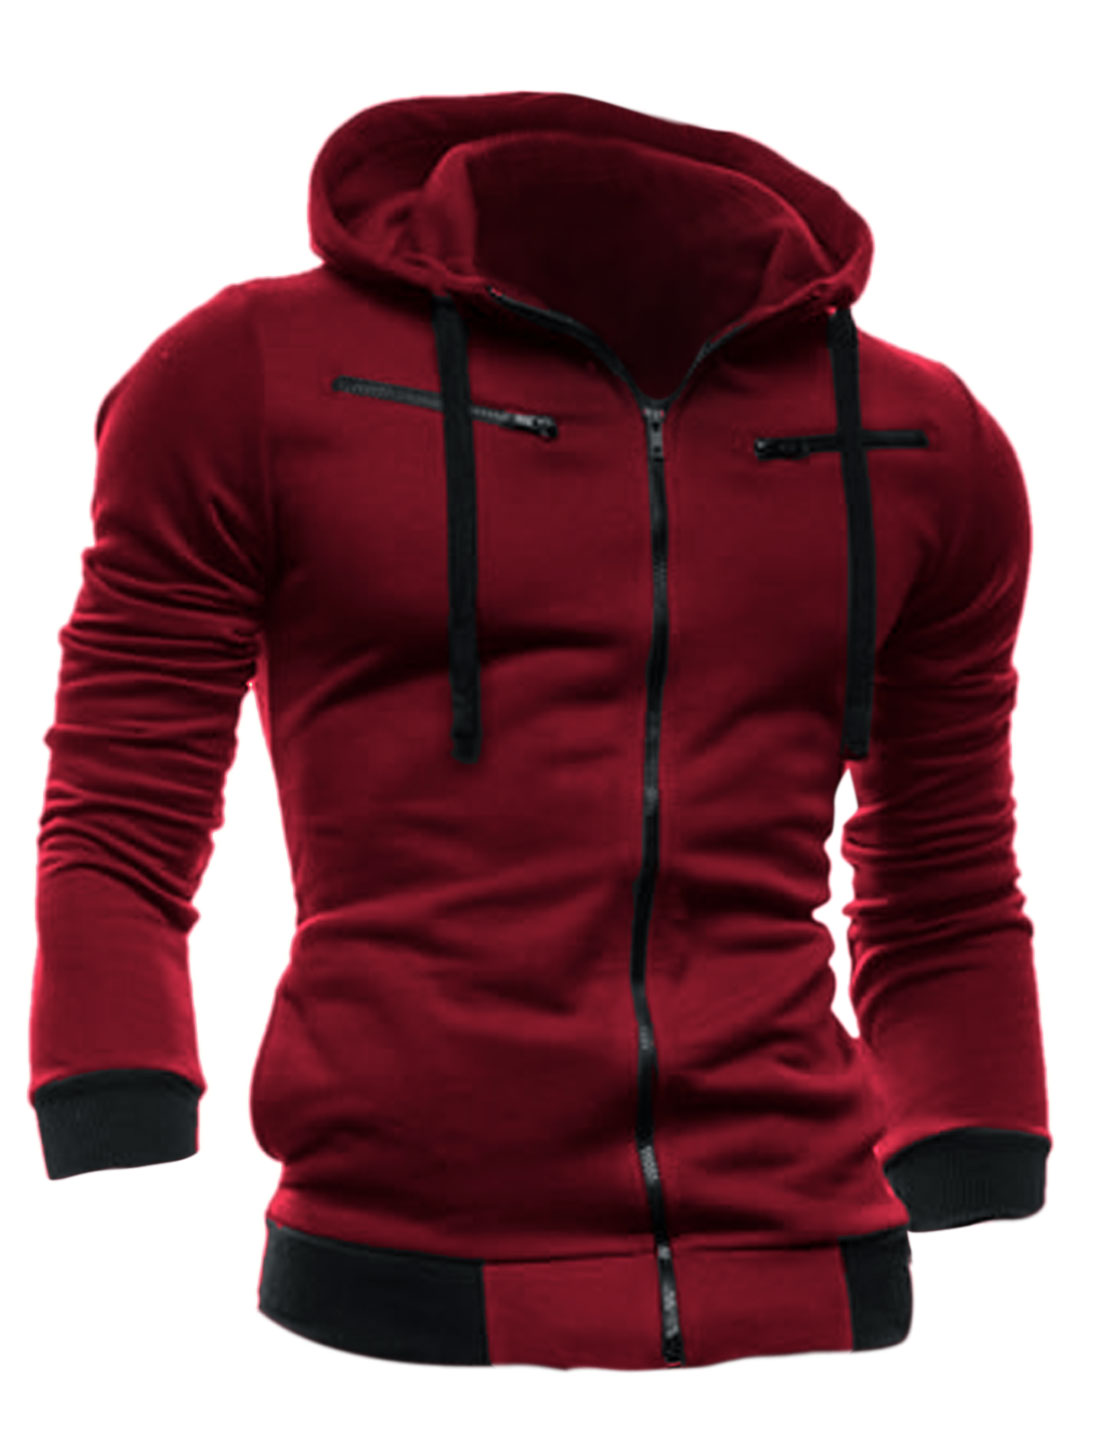 Men Full Zip Up Long Sleeve Fleece Inside Hoodie Sweatshirt Burgundy M